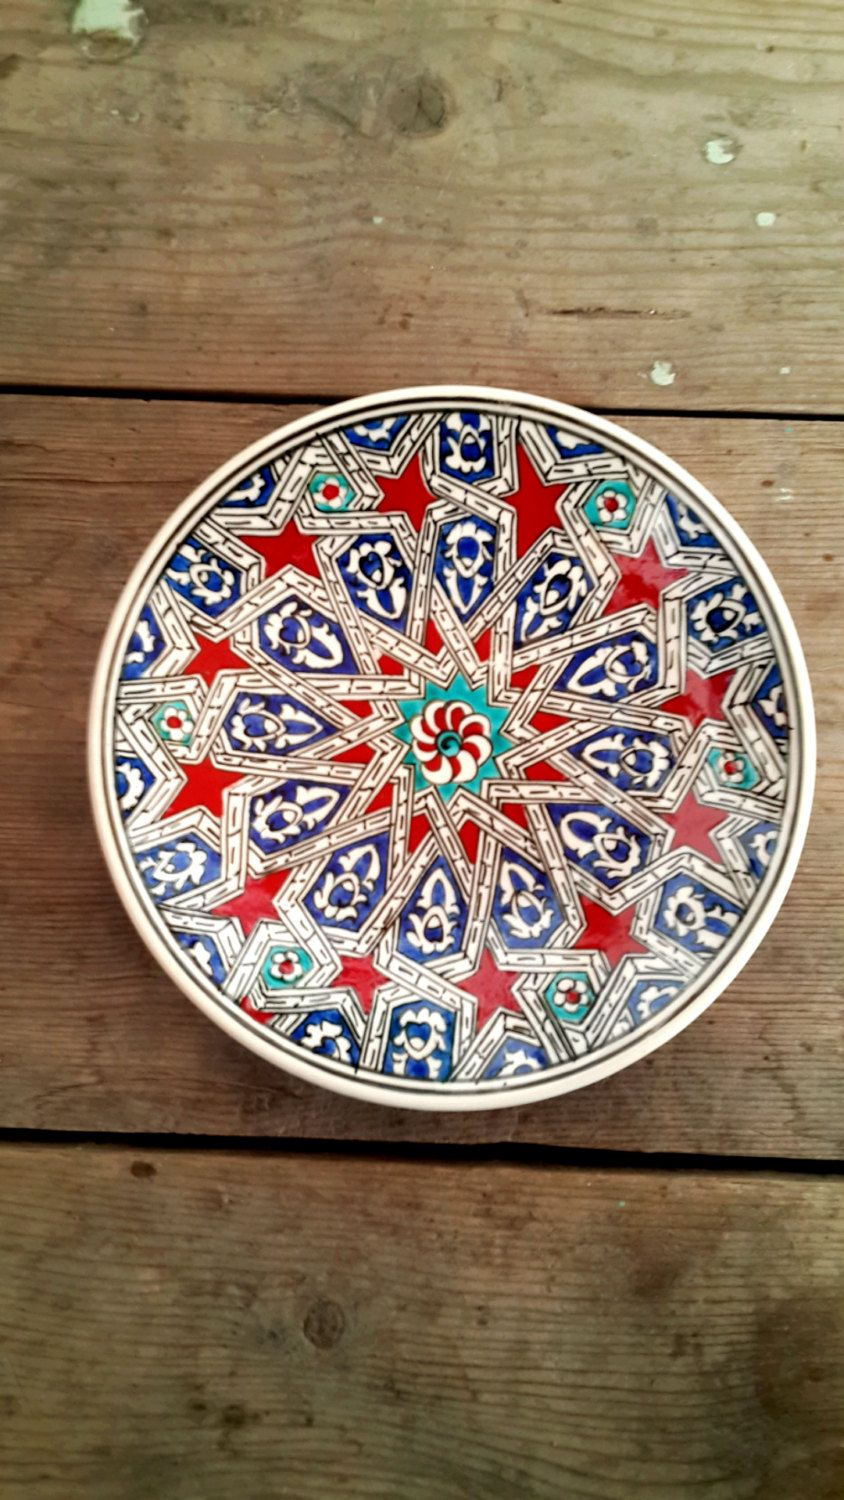 Plates Wall Decor Hand Made Turkish Ceramic Plate Wall Decor By Turqu50 On Etsy